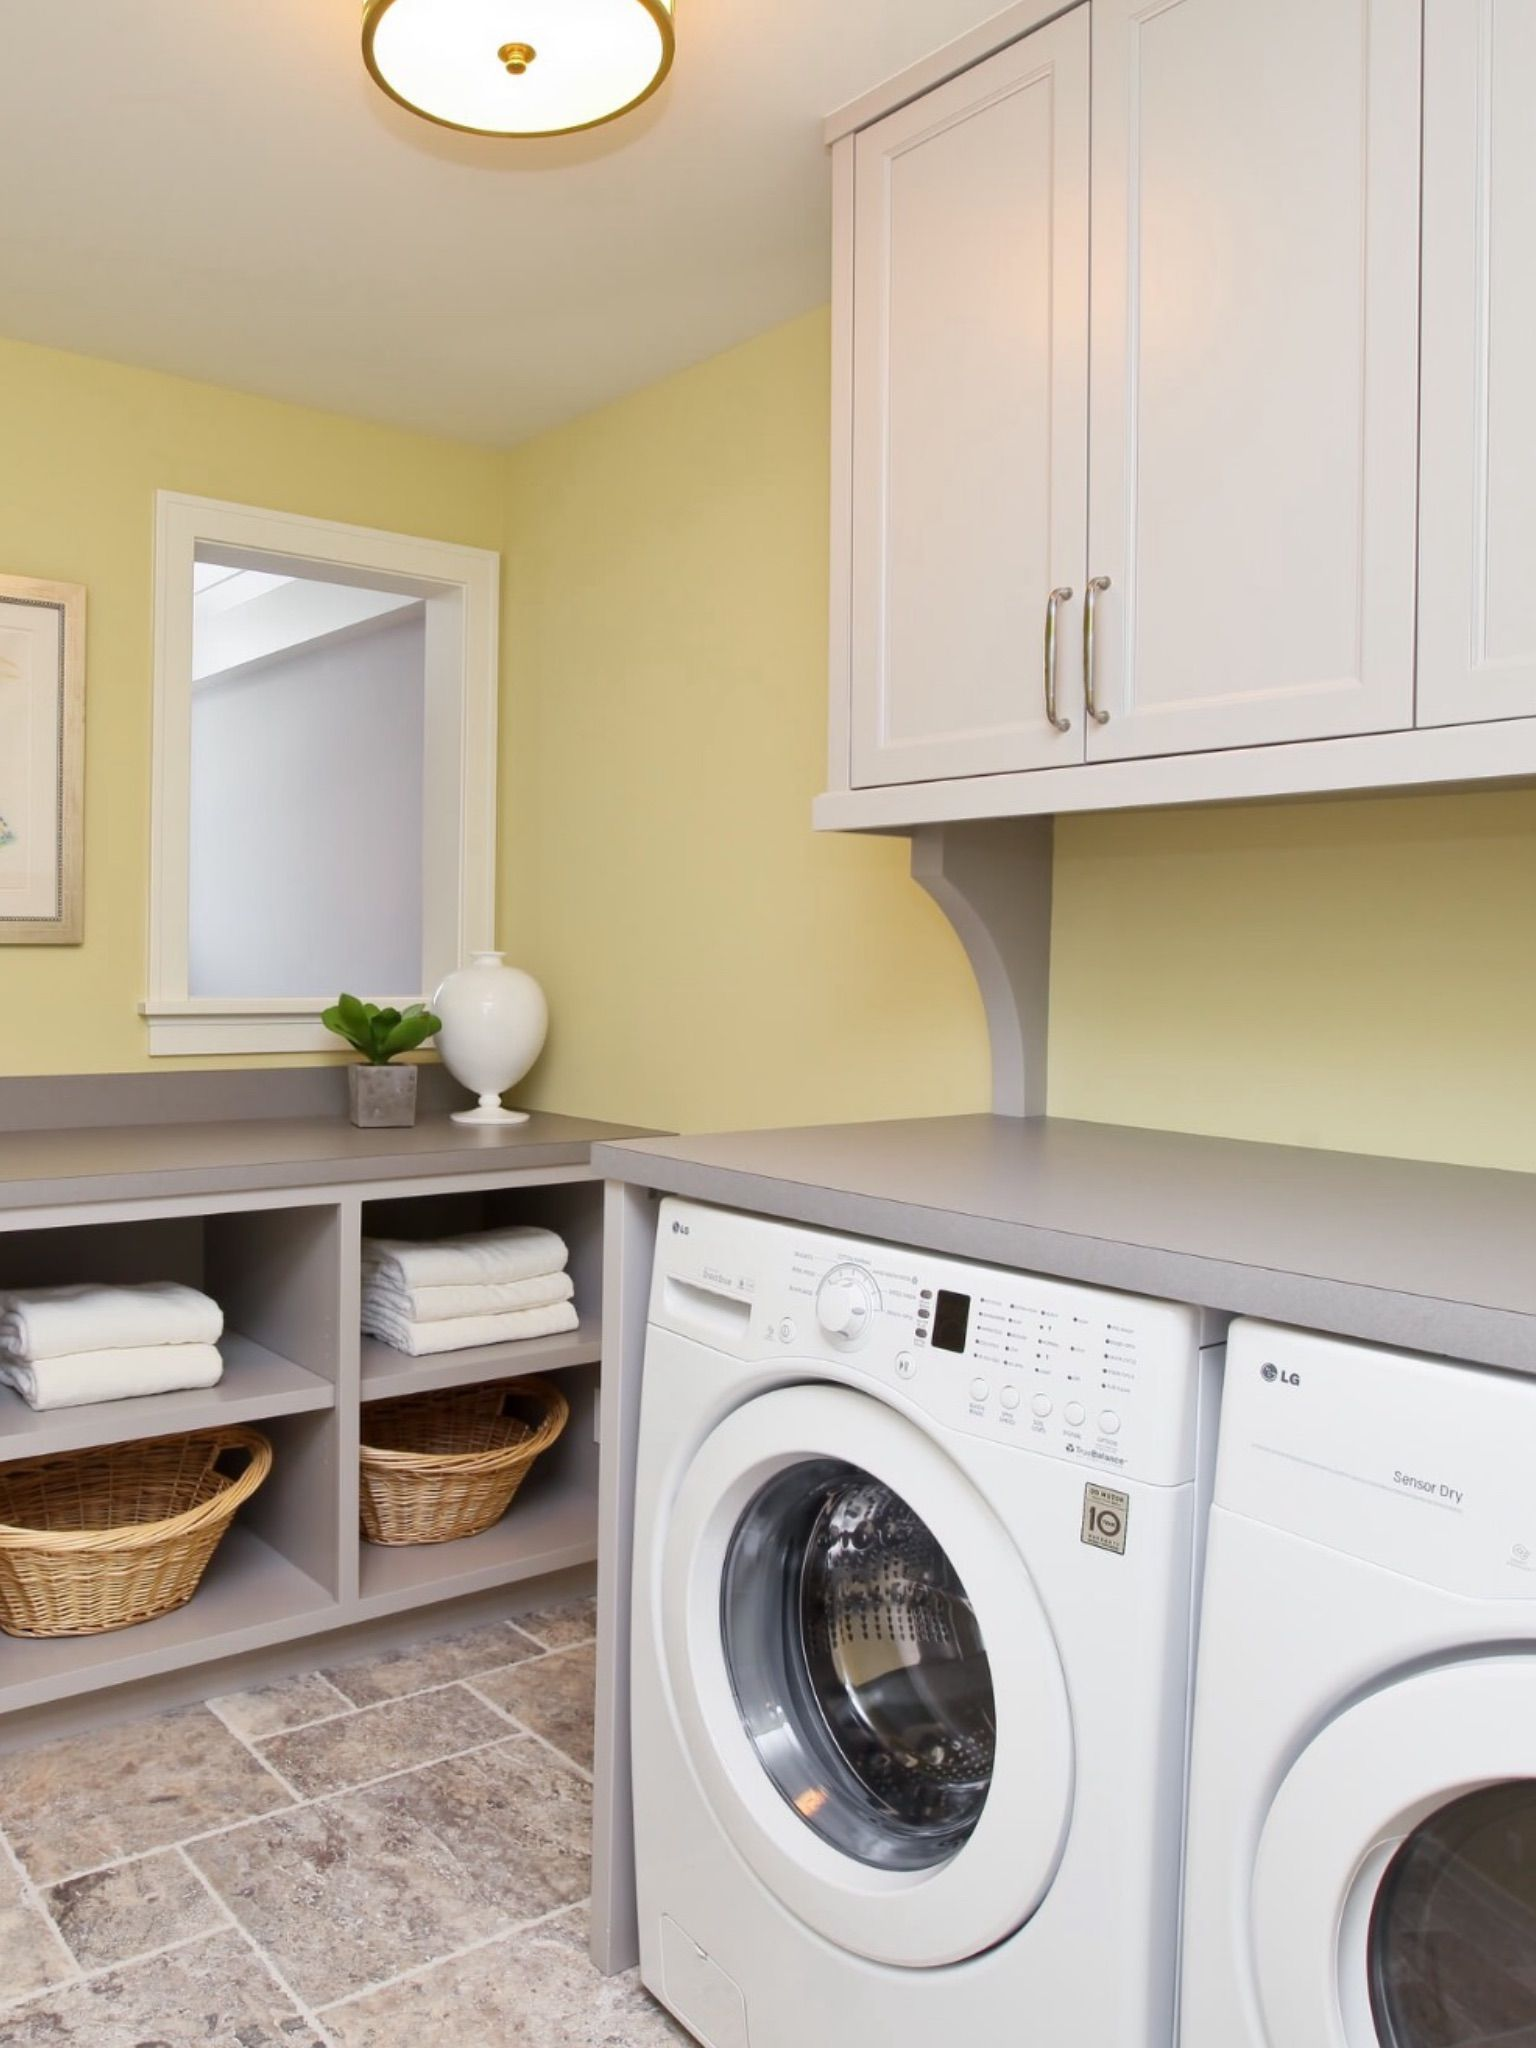 Amazing Colors For Laundry Room Walls Ideas - The Wall Art ...